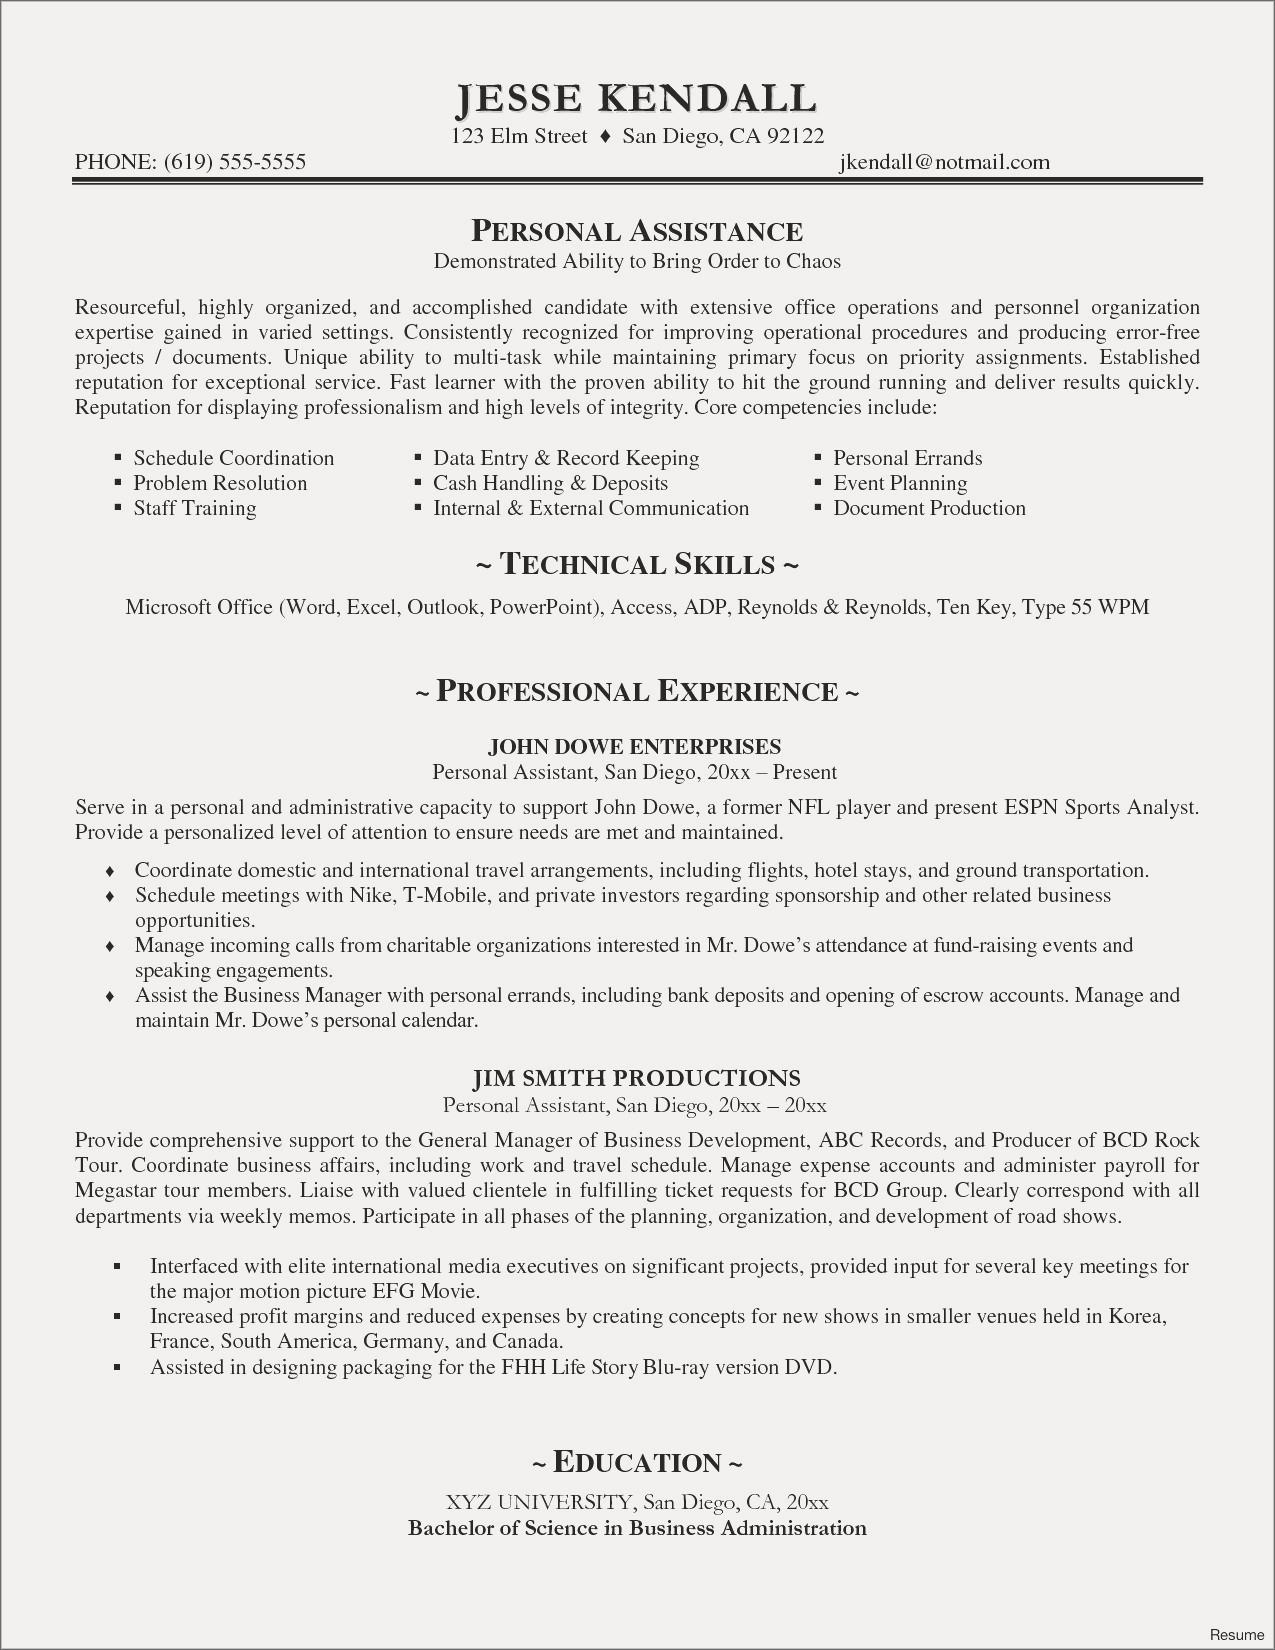 Entry Level Data Scientist Resume Sample - Fresh Registered Nurse Resume Samples Free